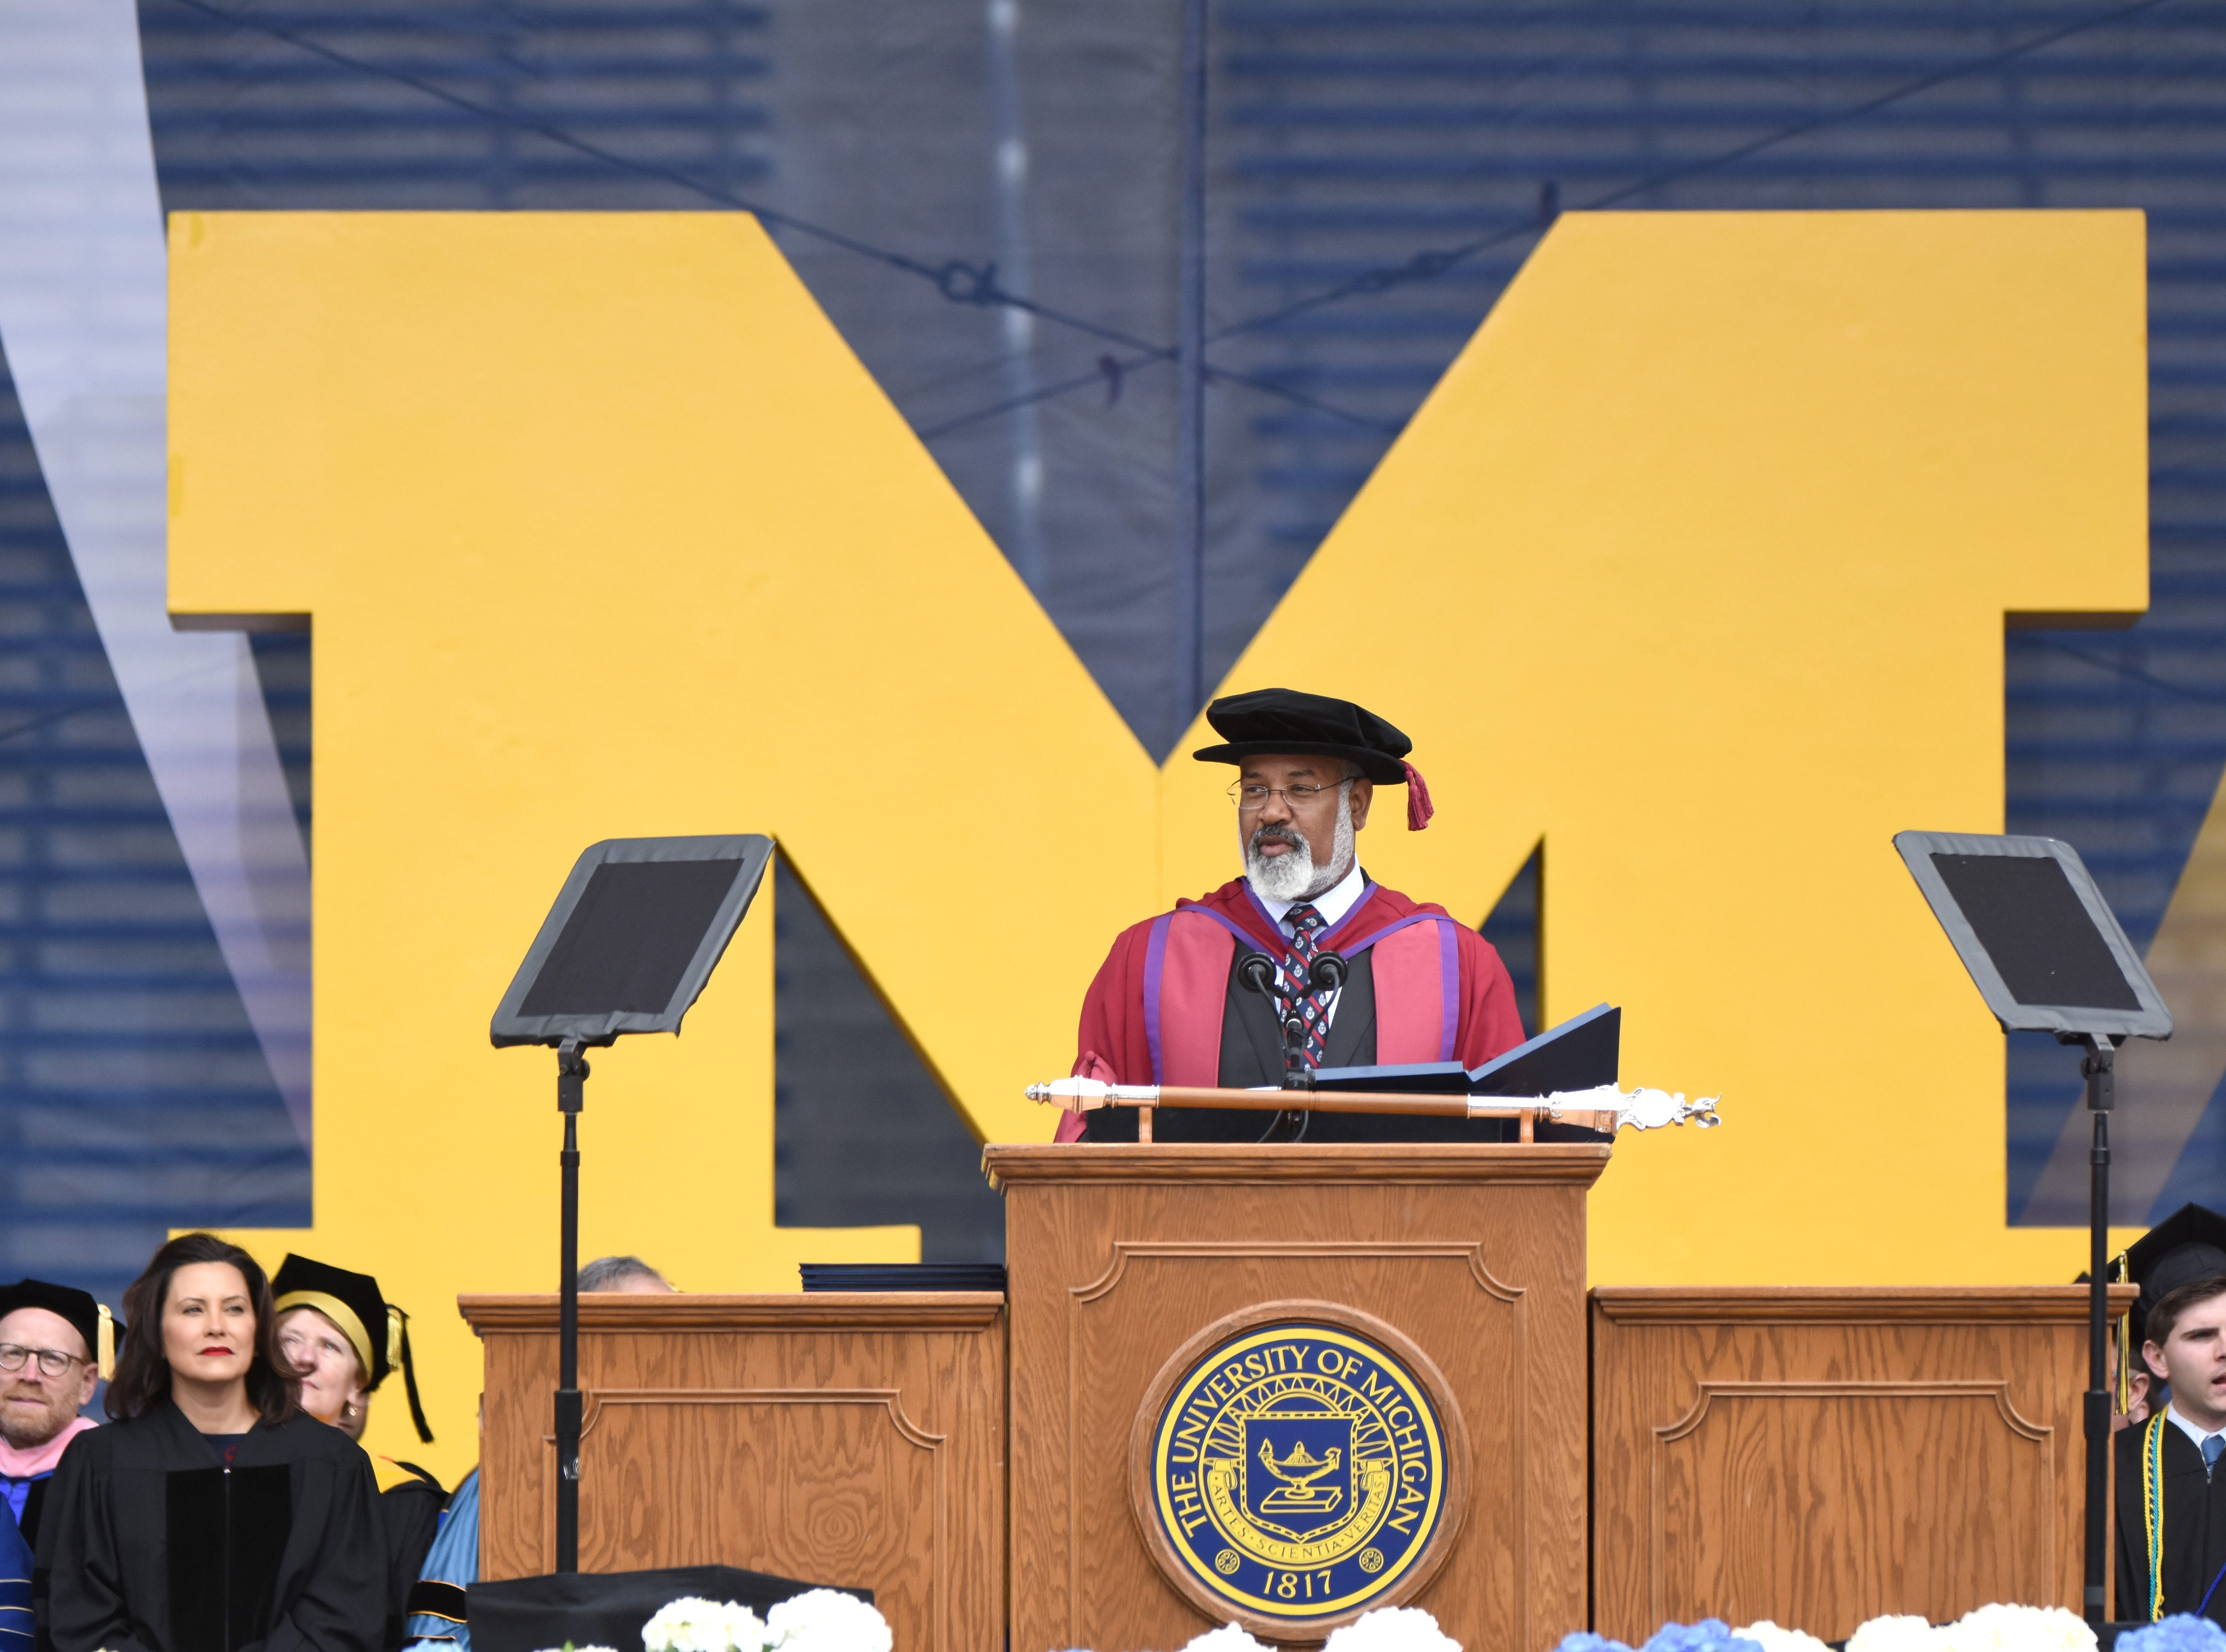 Martin Philbert, University of Michigan, Provost and Executive Vice-President for Academic Affairs, speaks during commencement exercises in Ann Arbor.